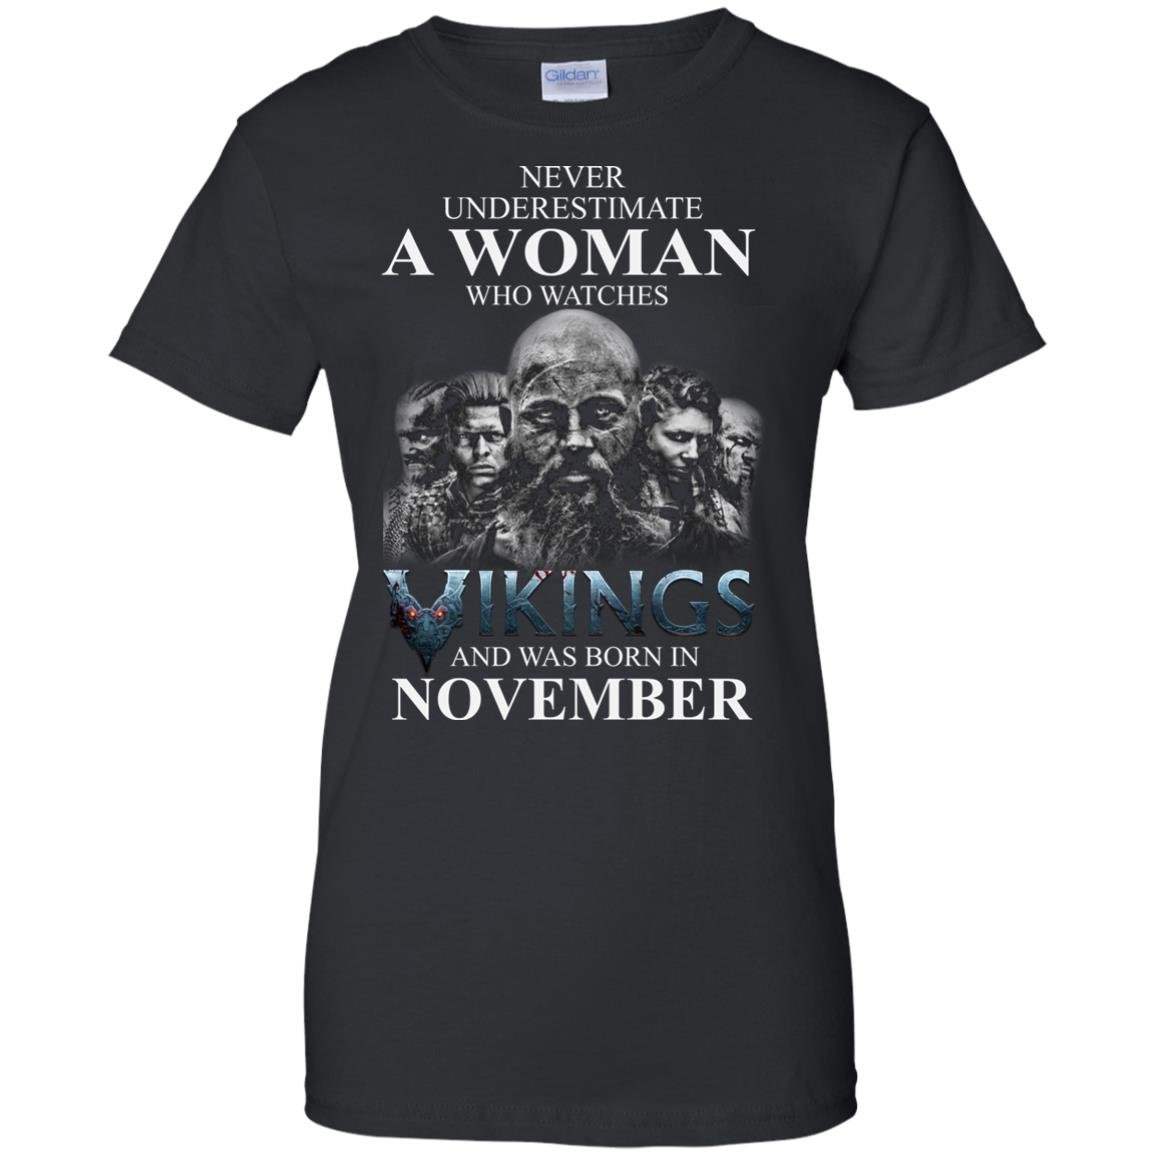 image 1241 - Never Underestimate A woman who watches Vikings and was born in November shirt